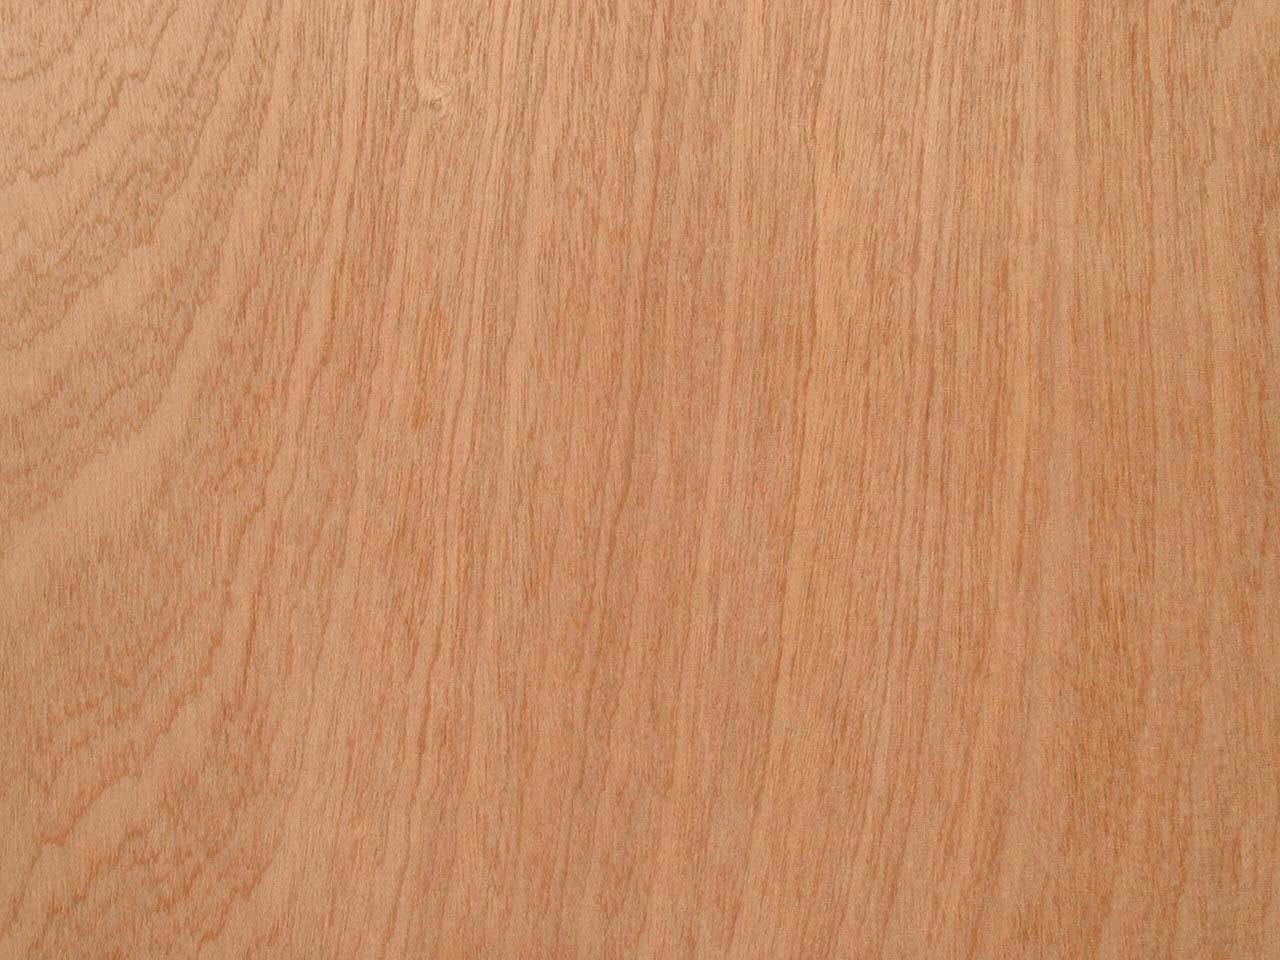 Okoume Weighs Approximately 450 500kg M3 It Is A Non Durable Specie With Low Decay Resistance And Moderate Dimensional Stability The Major Use Of Gaboon Legno